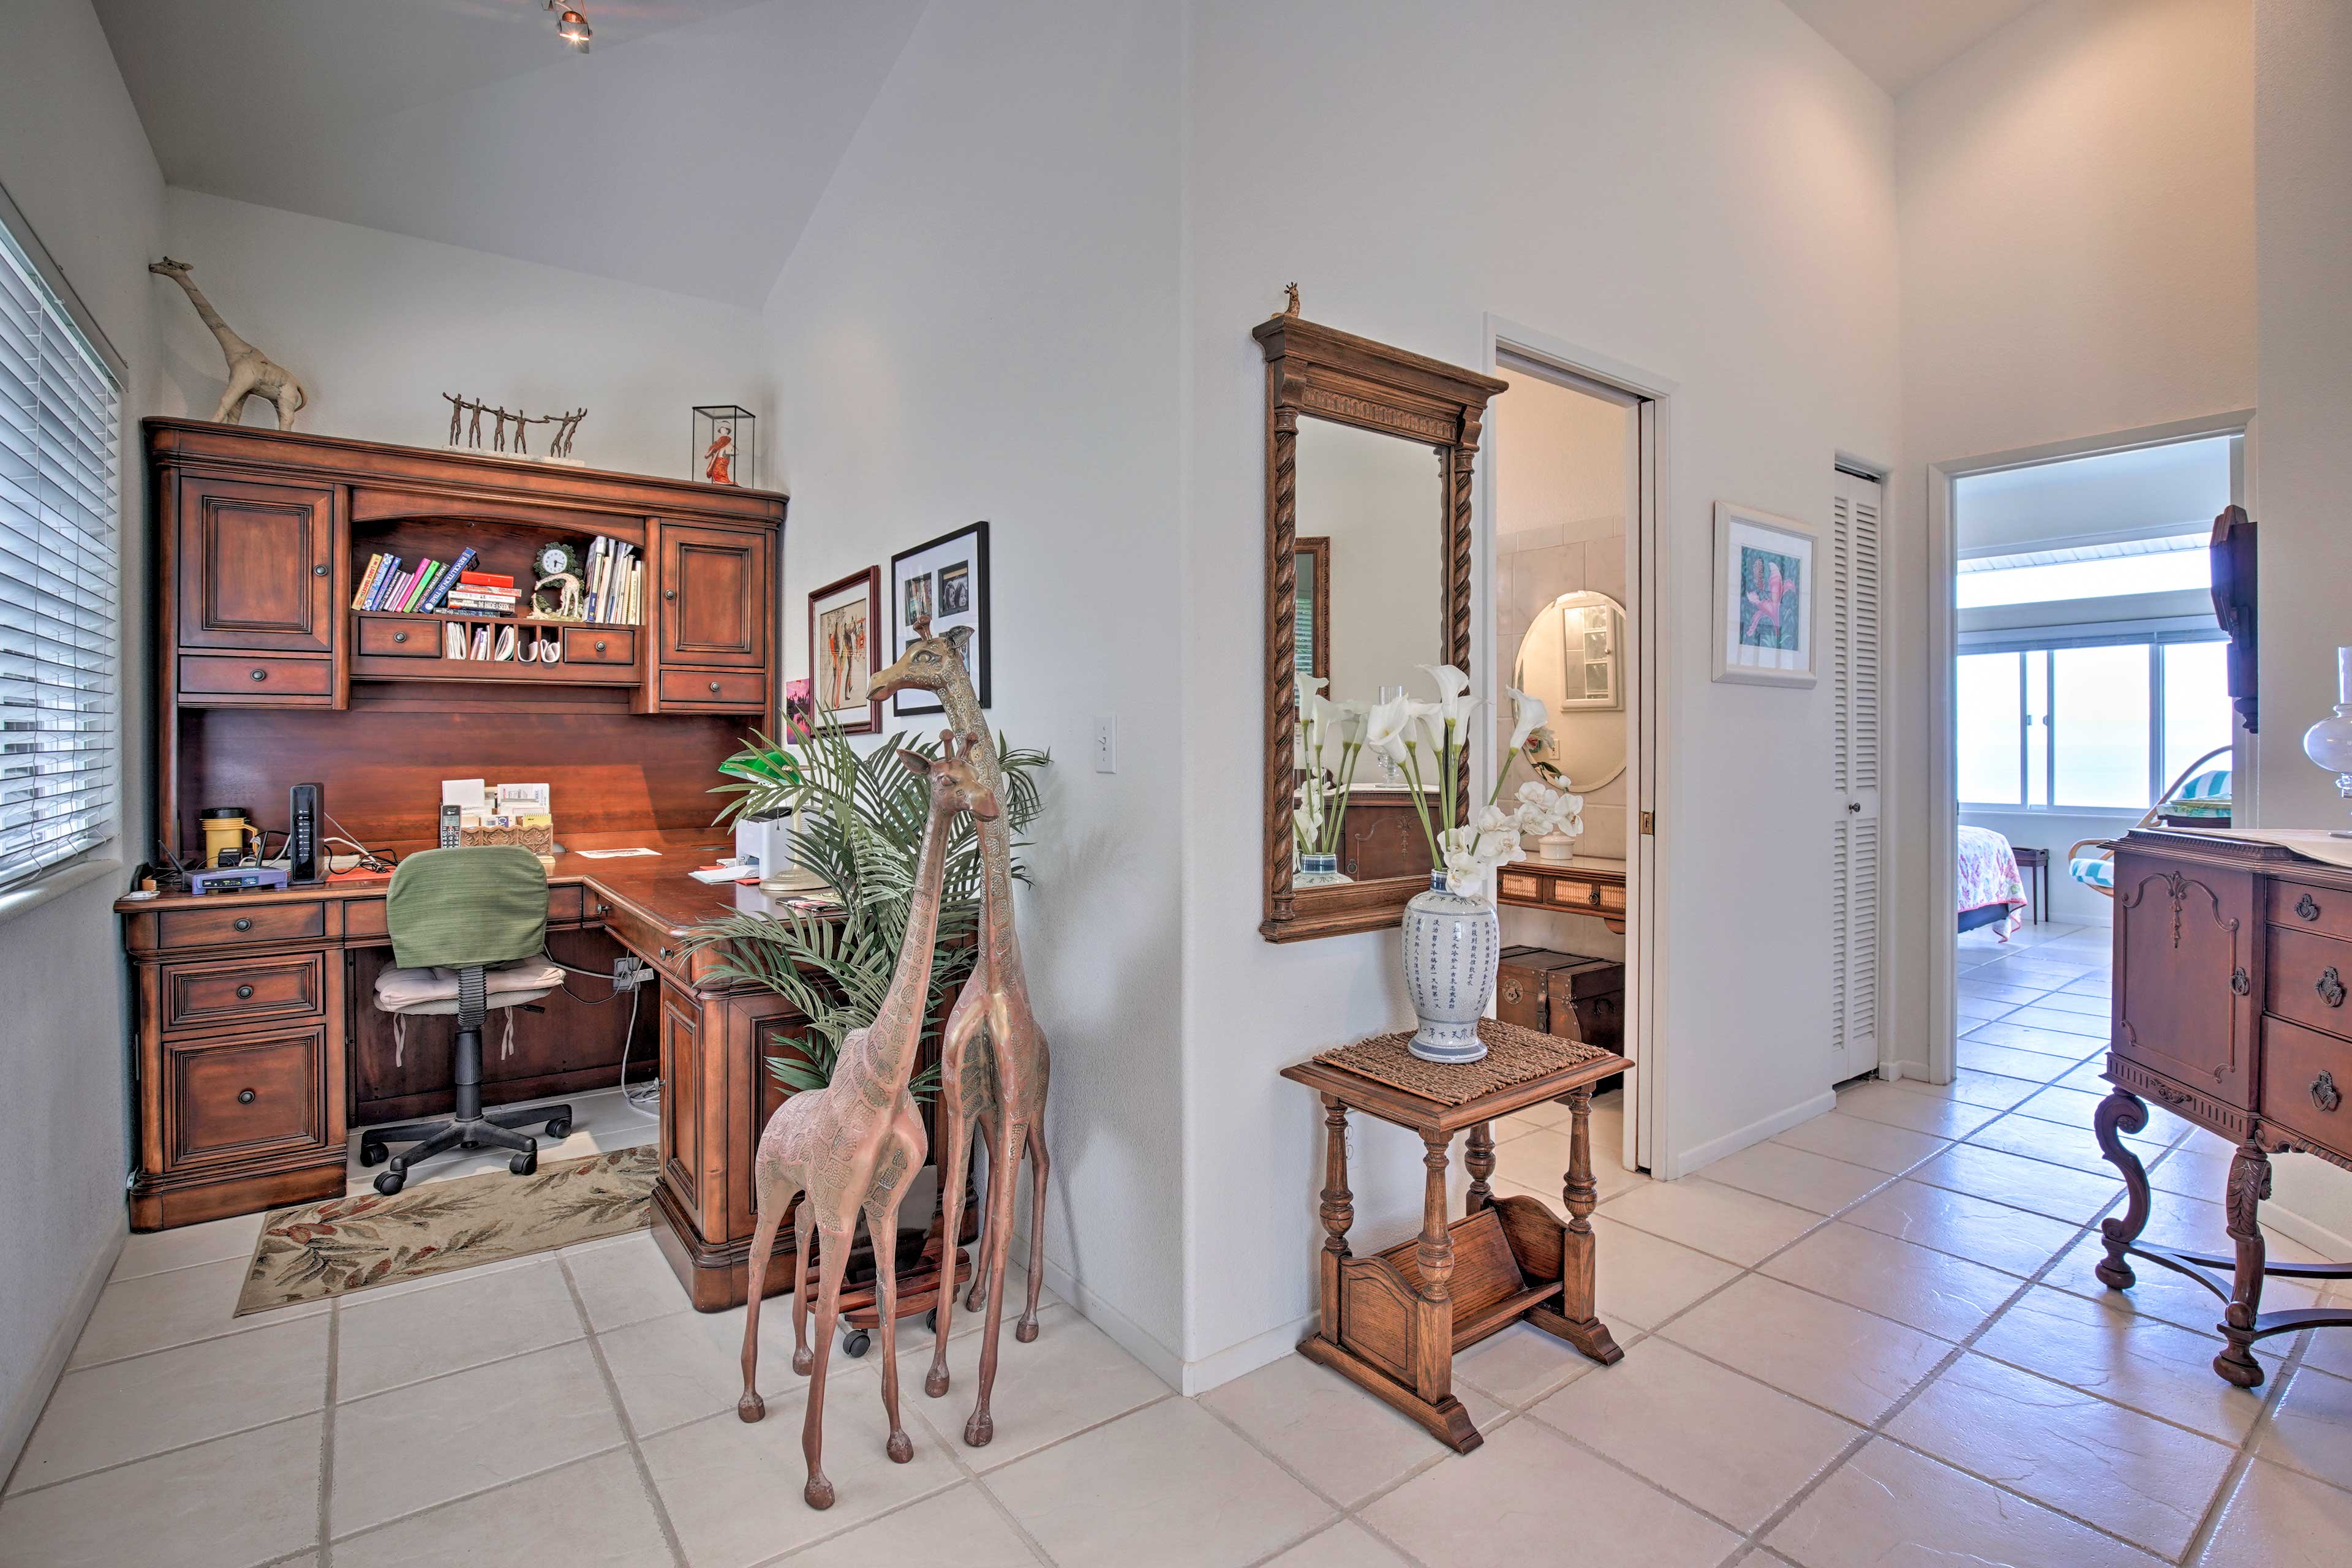 Can't disconnect? You'll find several work spaces/desks throughout the home.